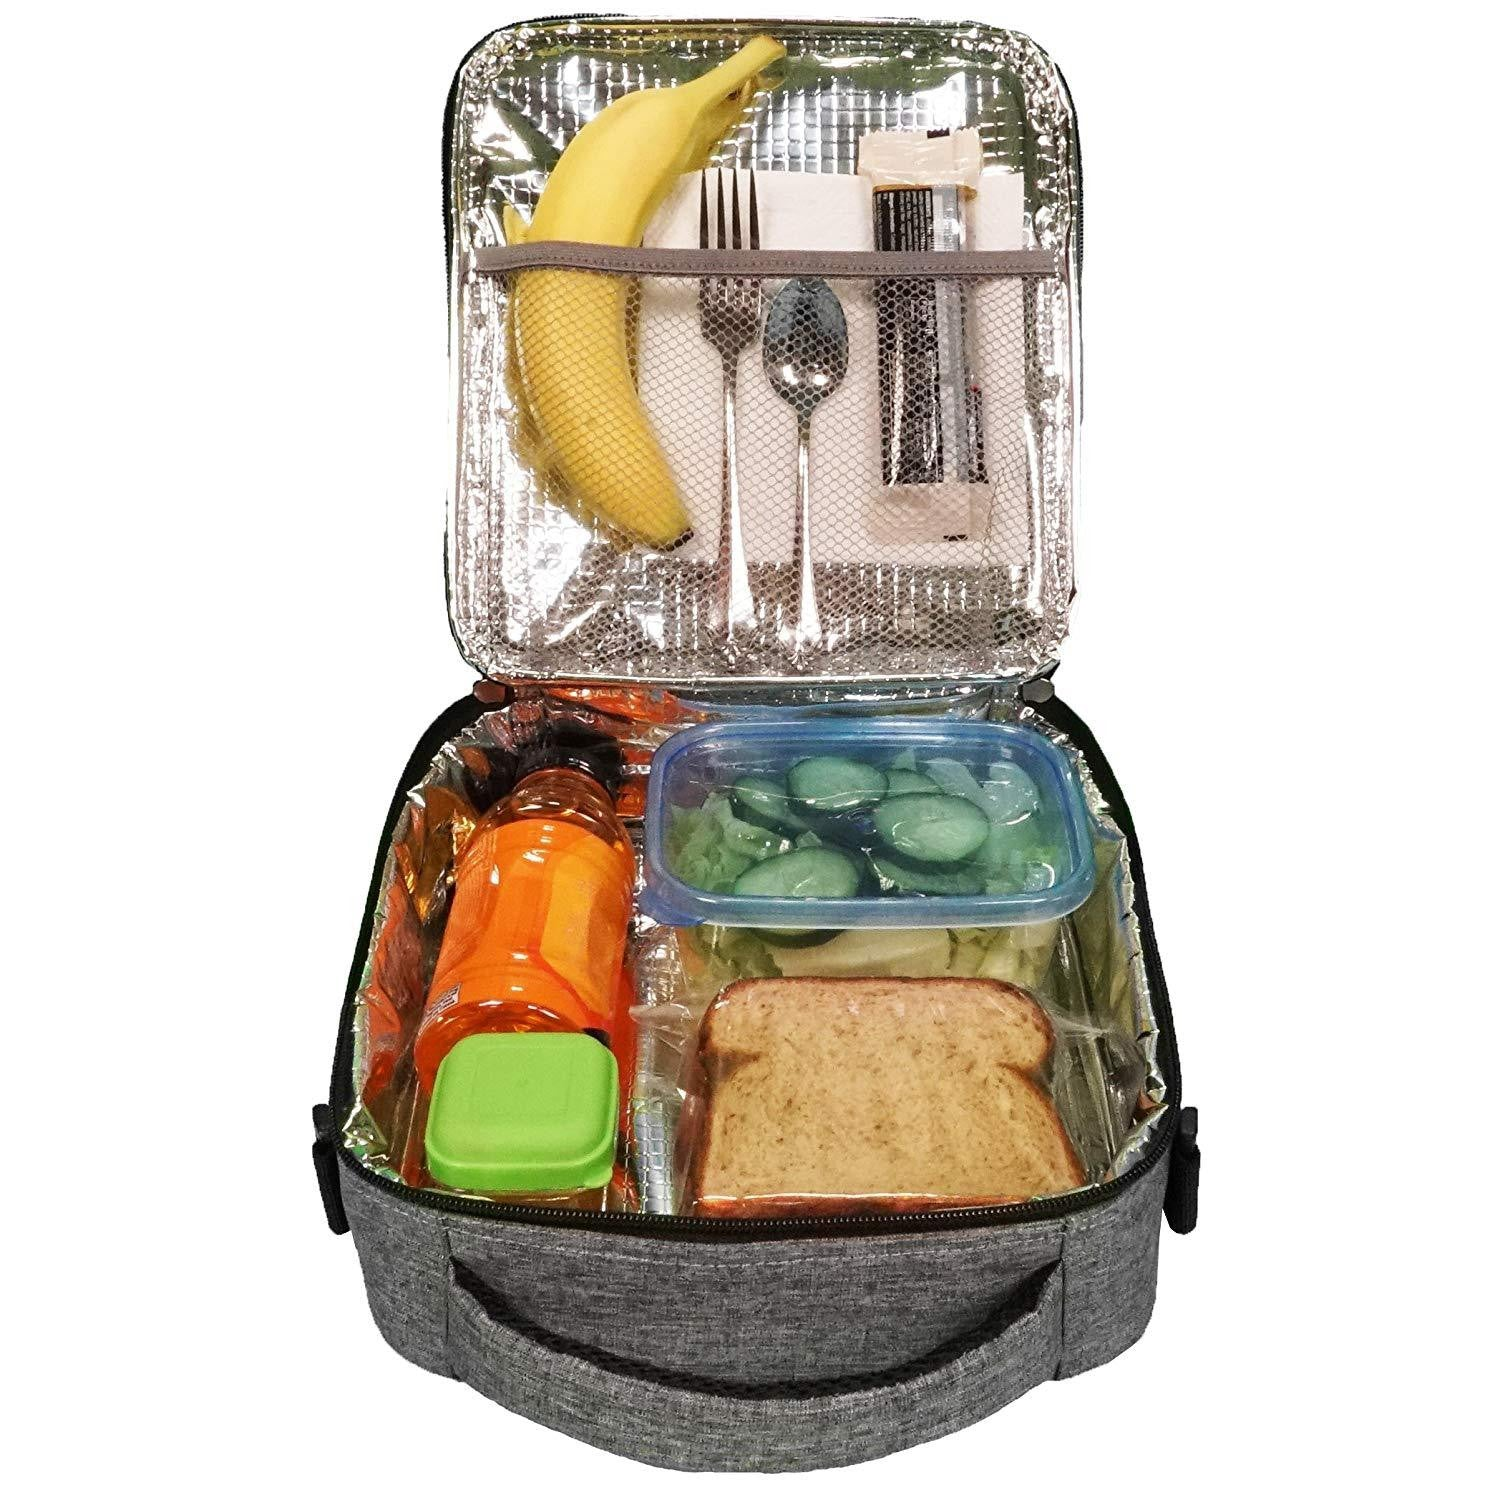 Durable Insulated Prepit Lunch Box (Charcoal Gray) - Prep it